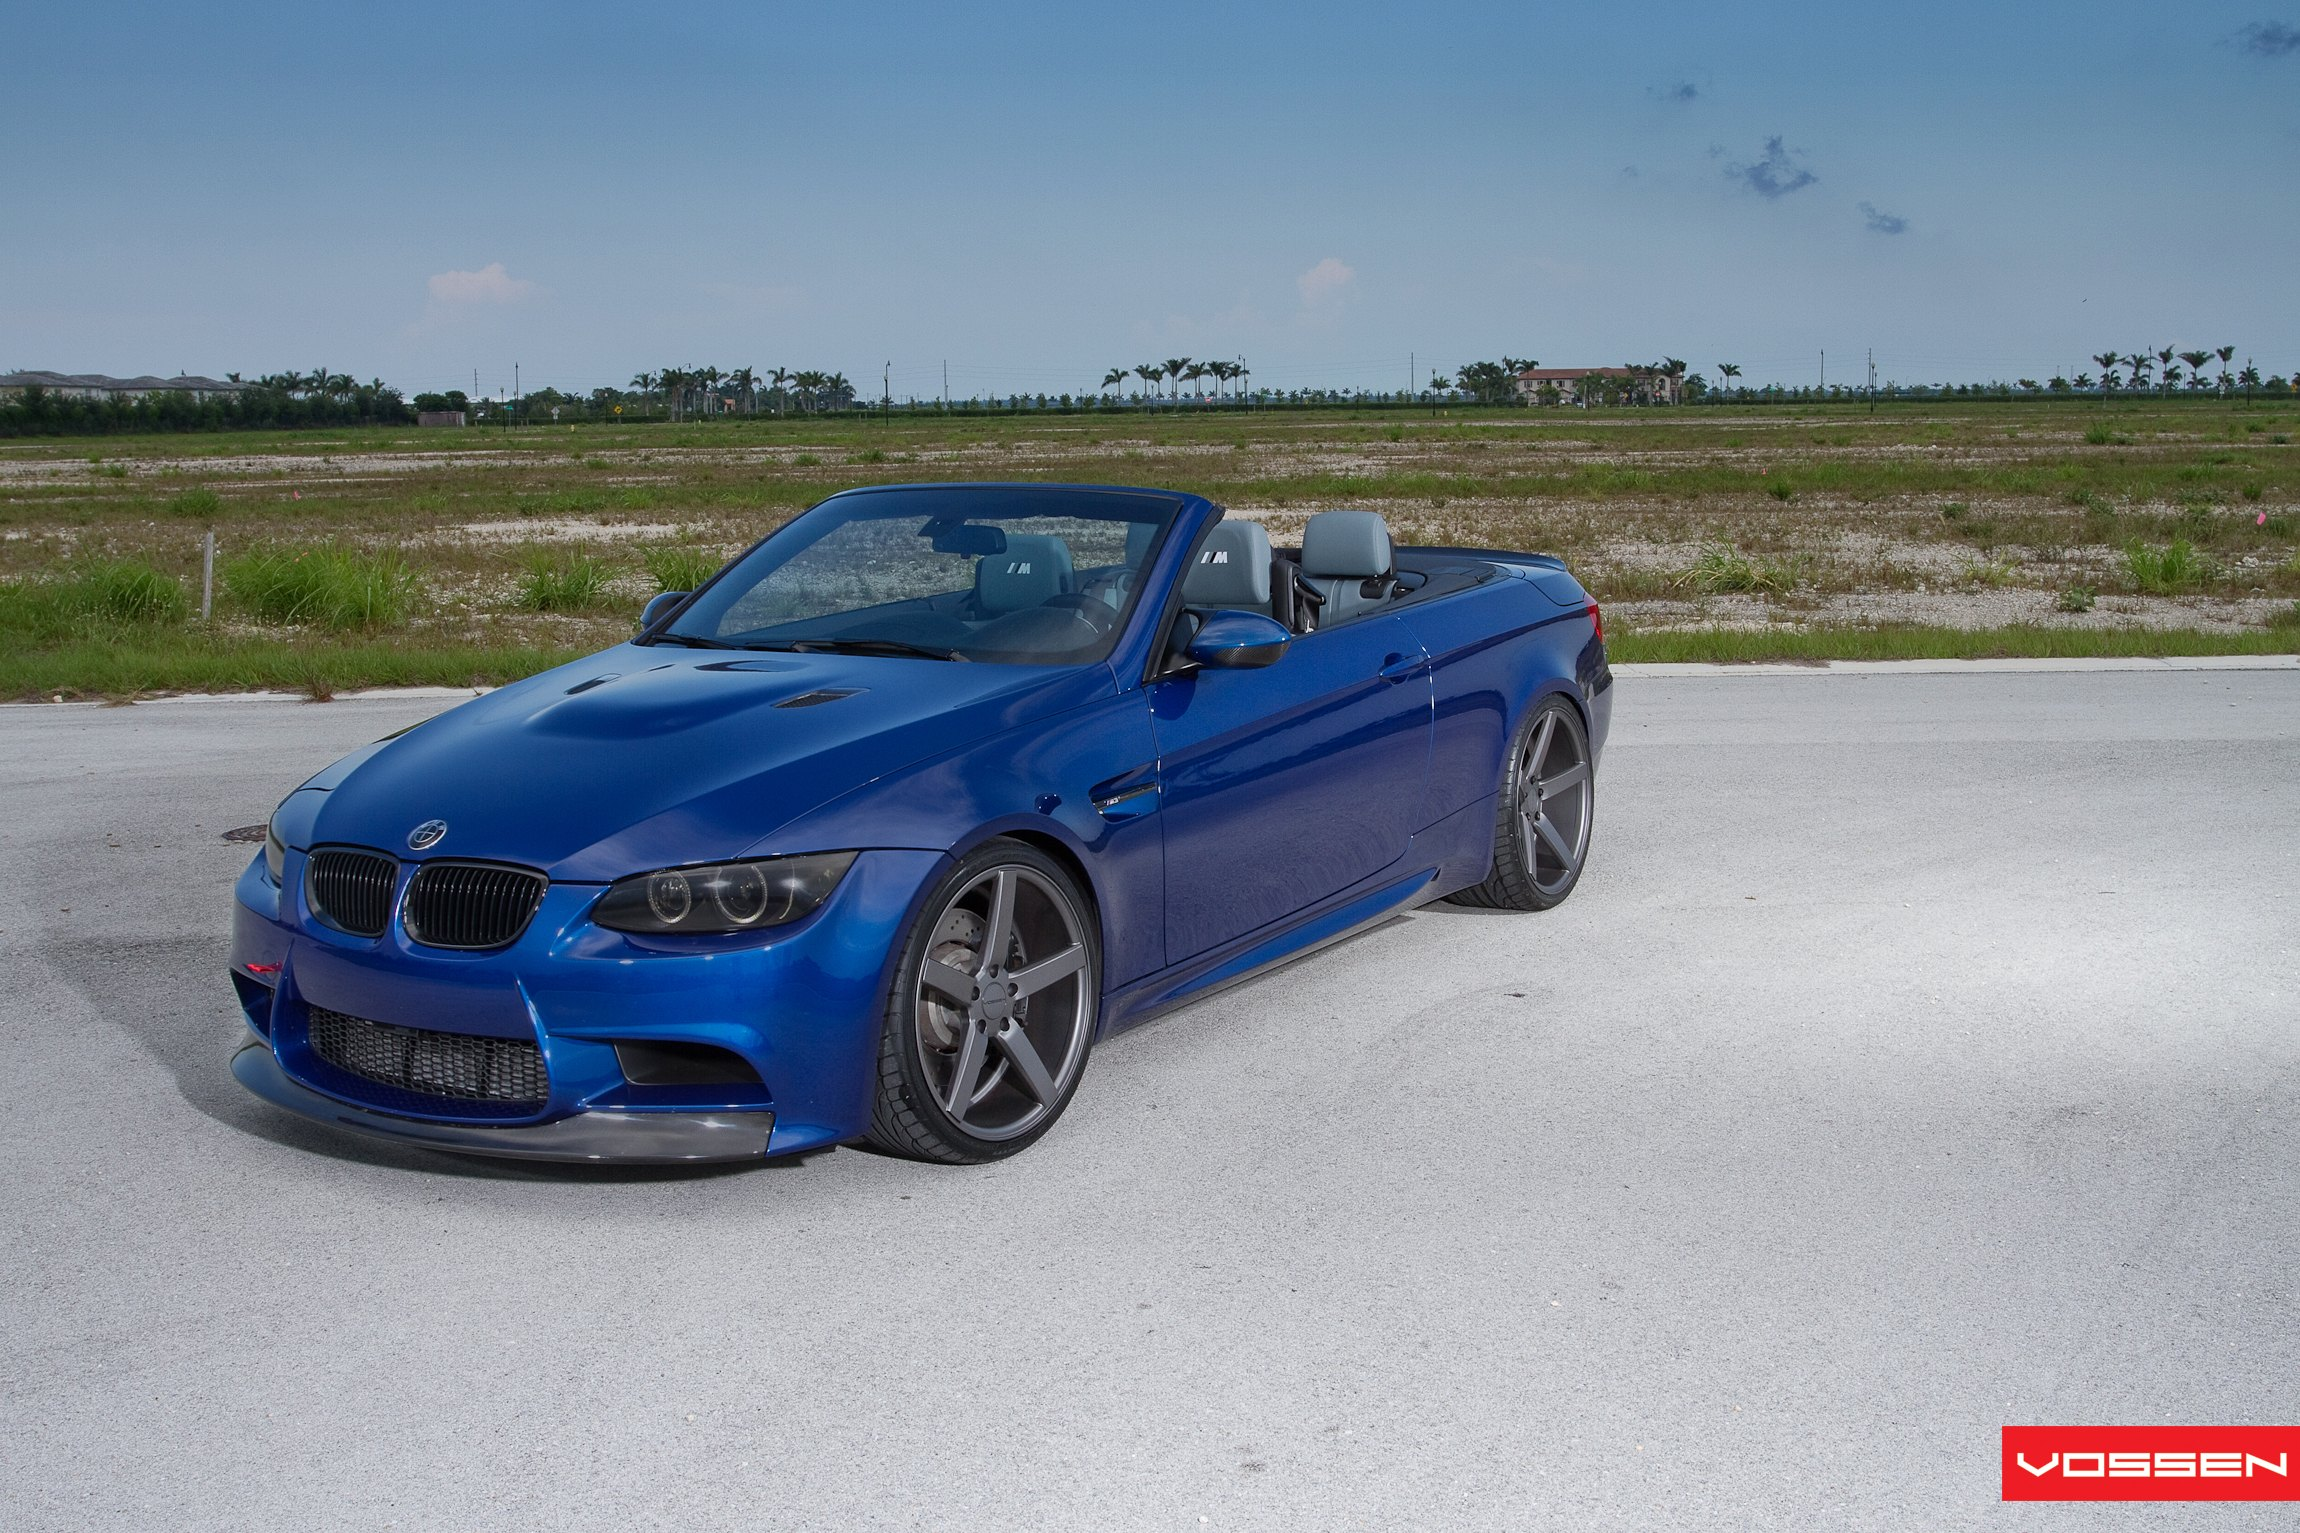 Blue Convertible BMW 3-Series with Custom Hood - Photo by Vossen